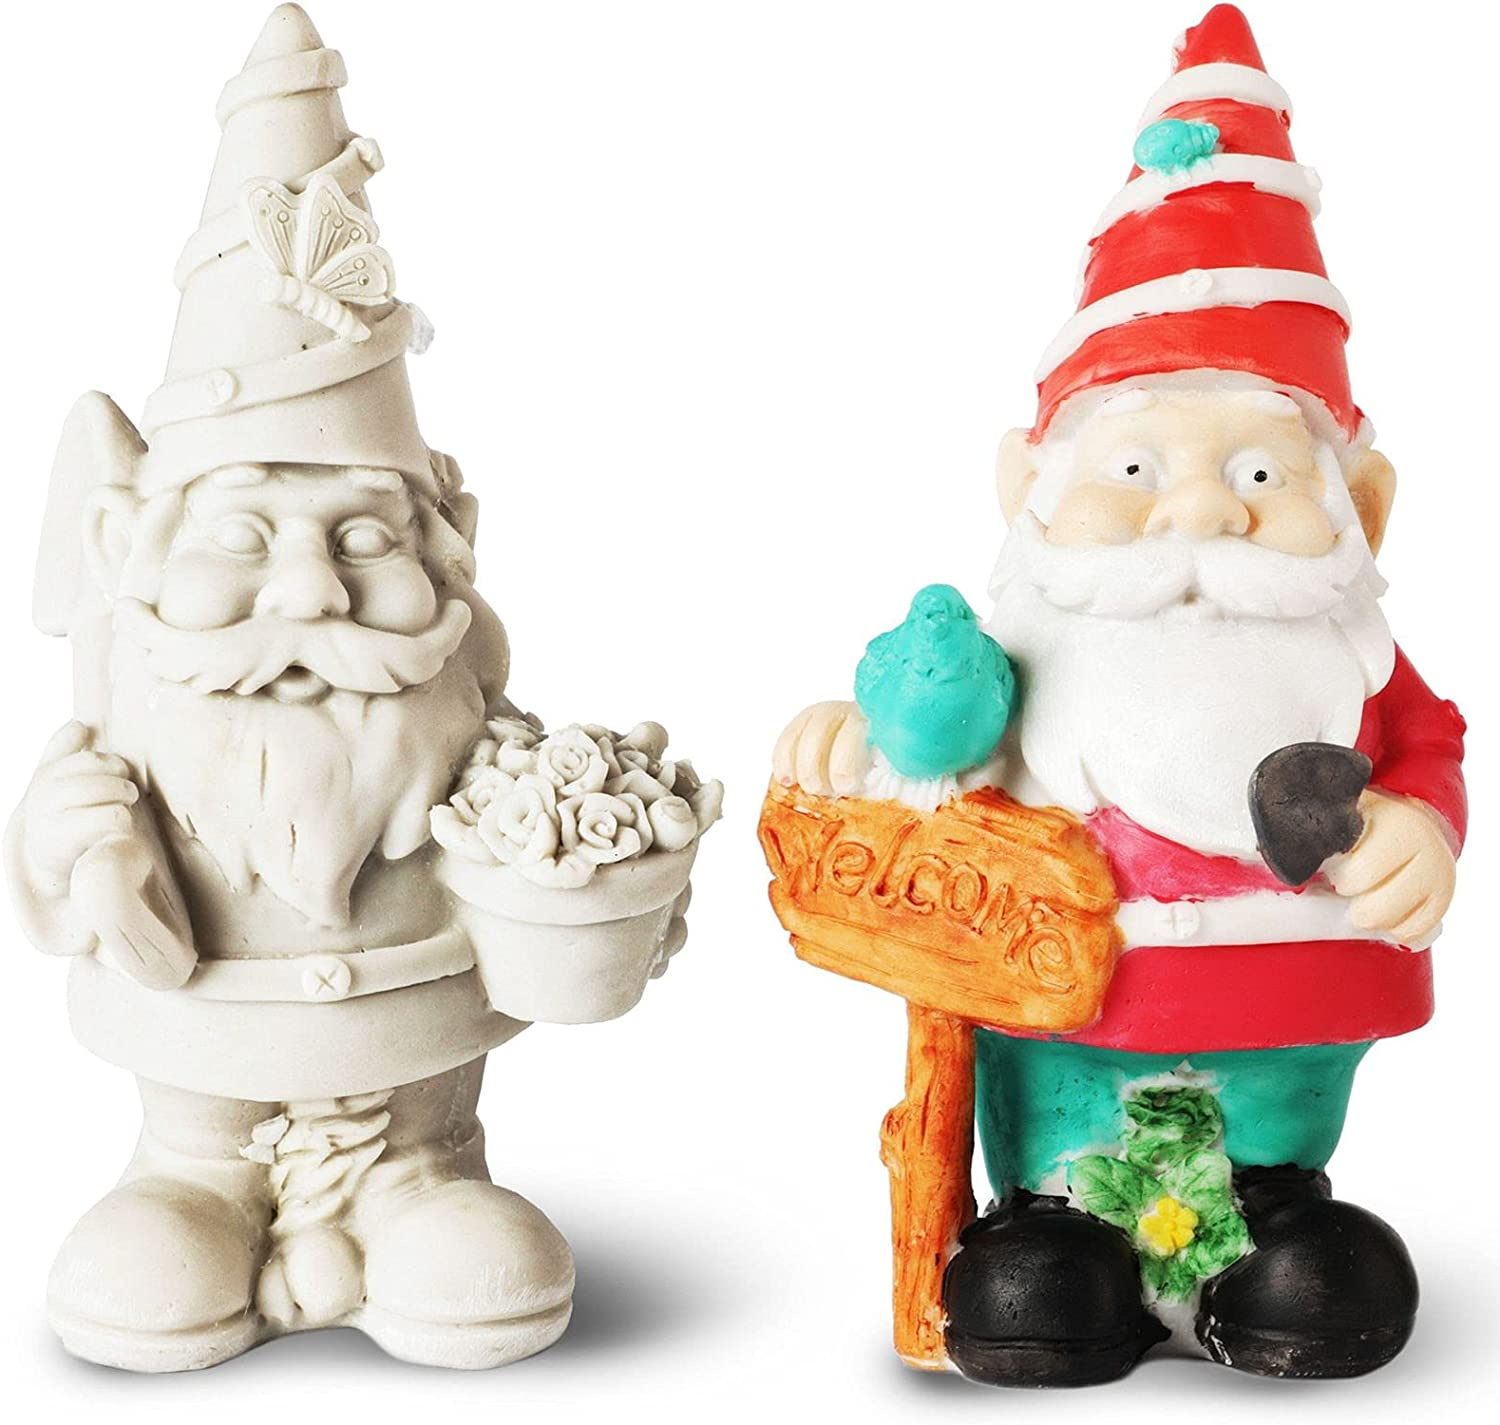 Paint Your Own Garden Gnomes Figur Price reduction Austin Mall DIY Ceramics Unpainted Small